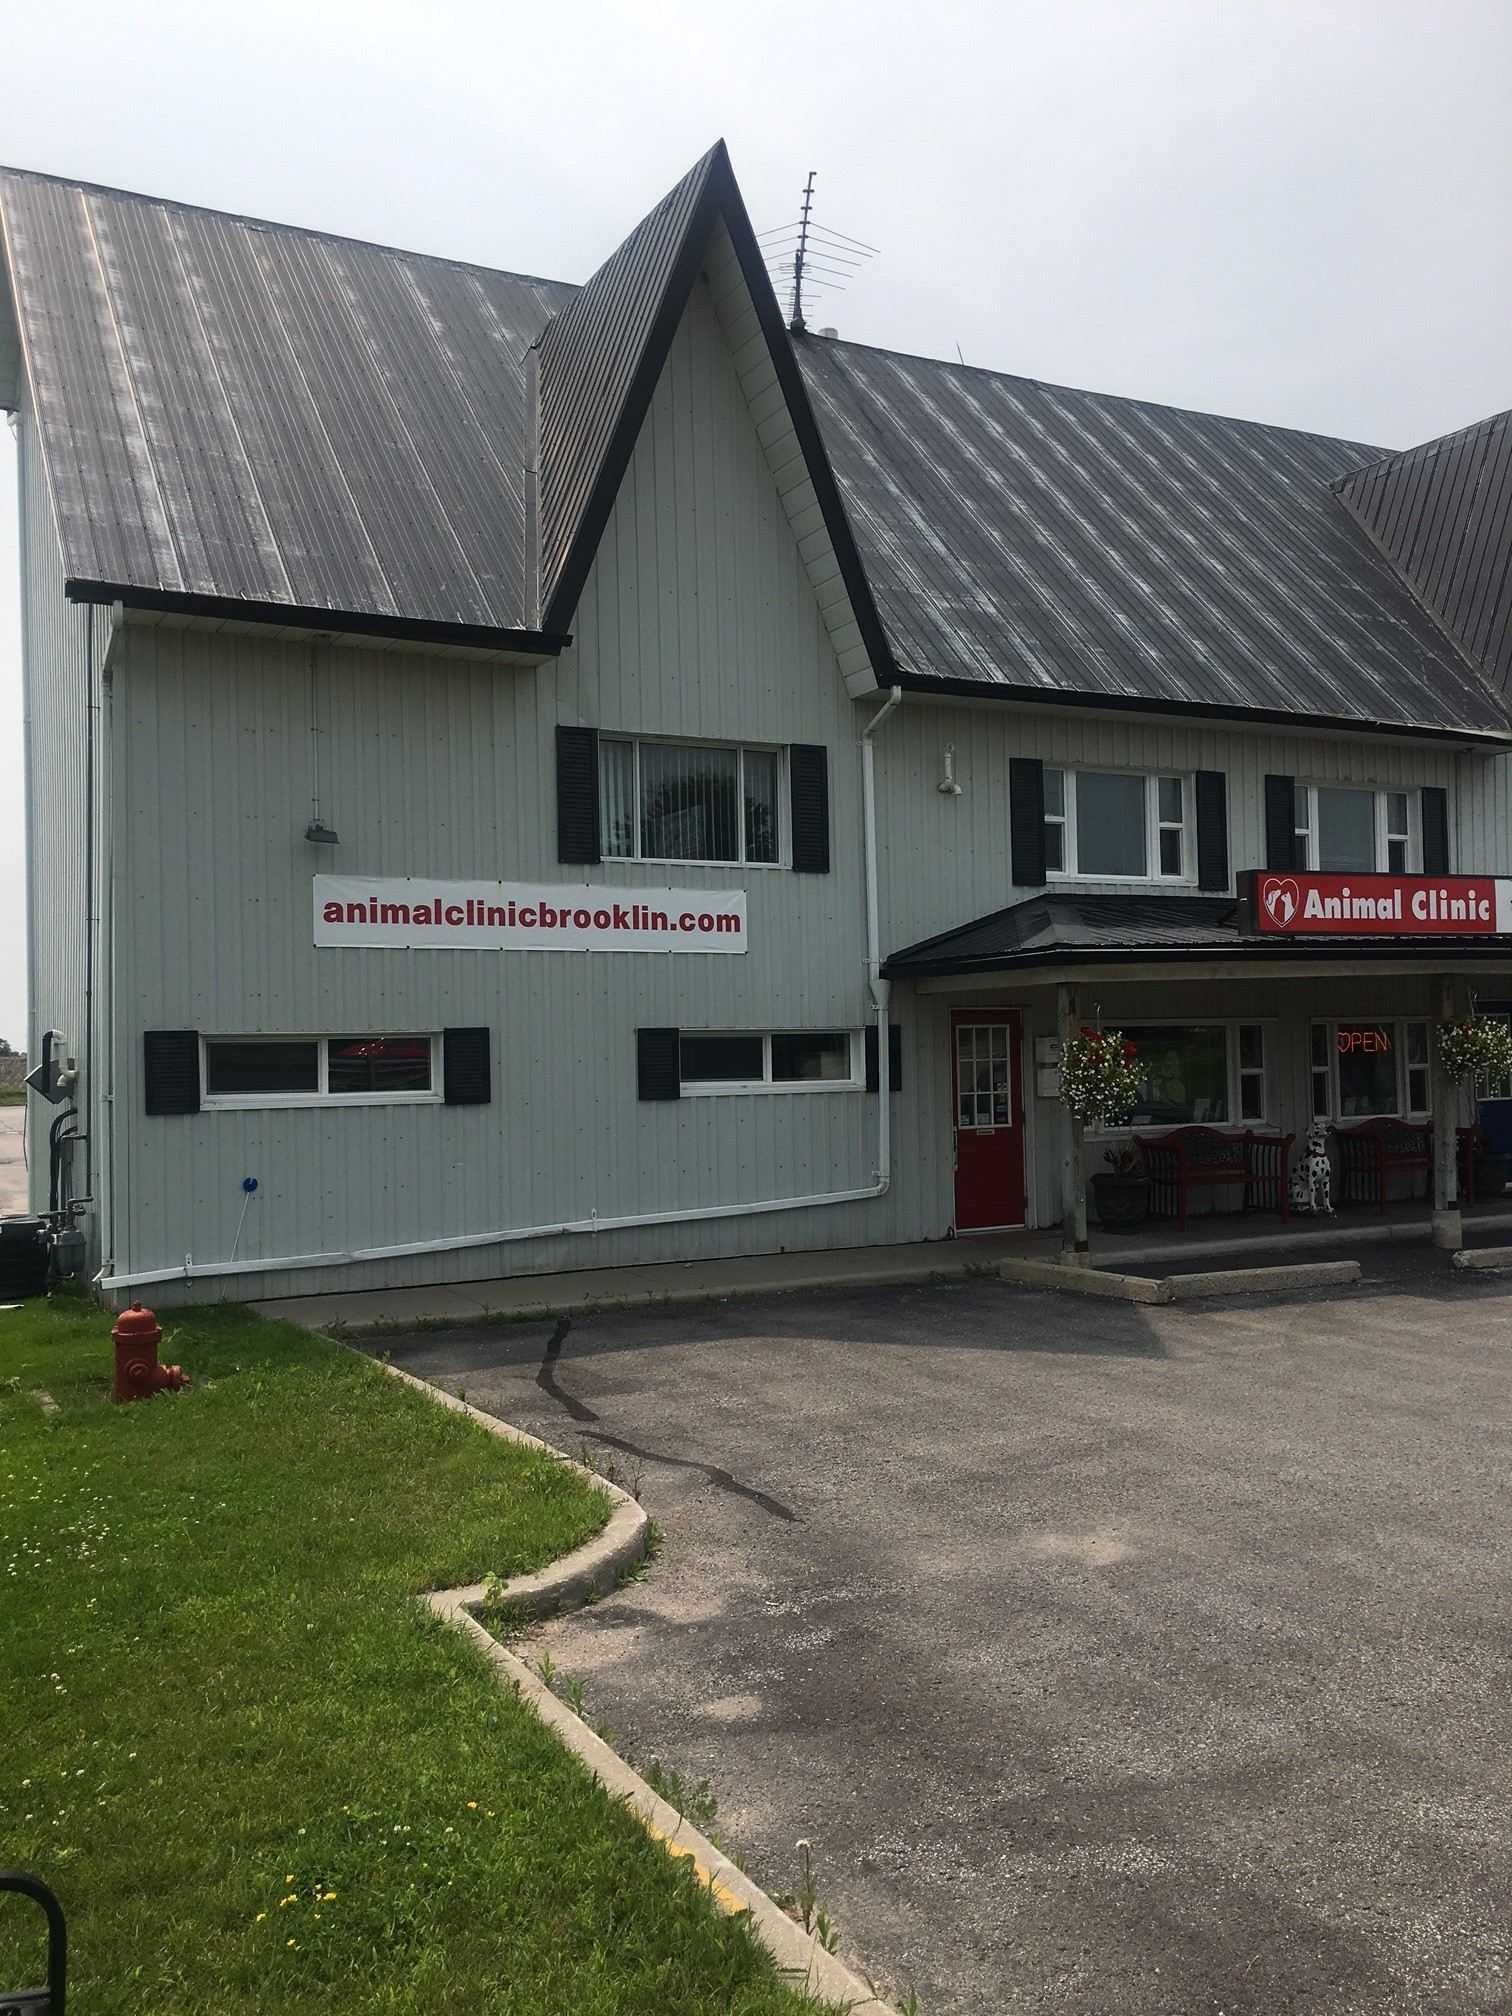 Animal Clinic Of Brooklin in Whitby